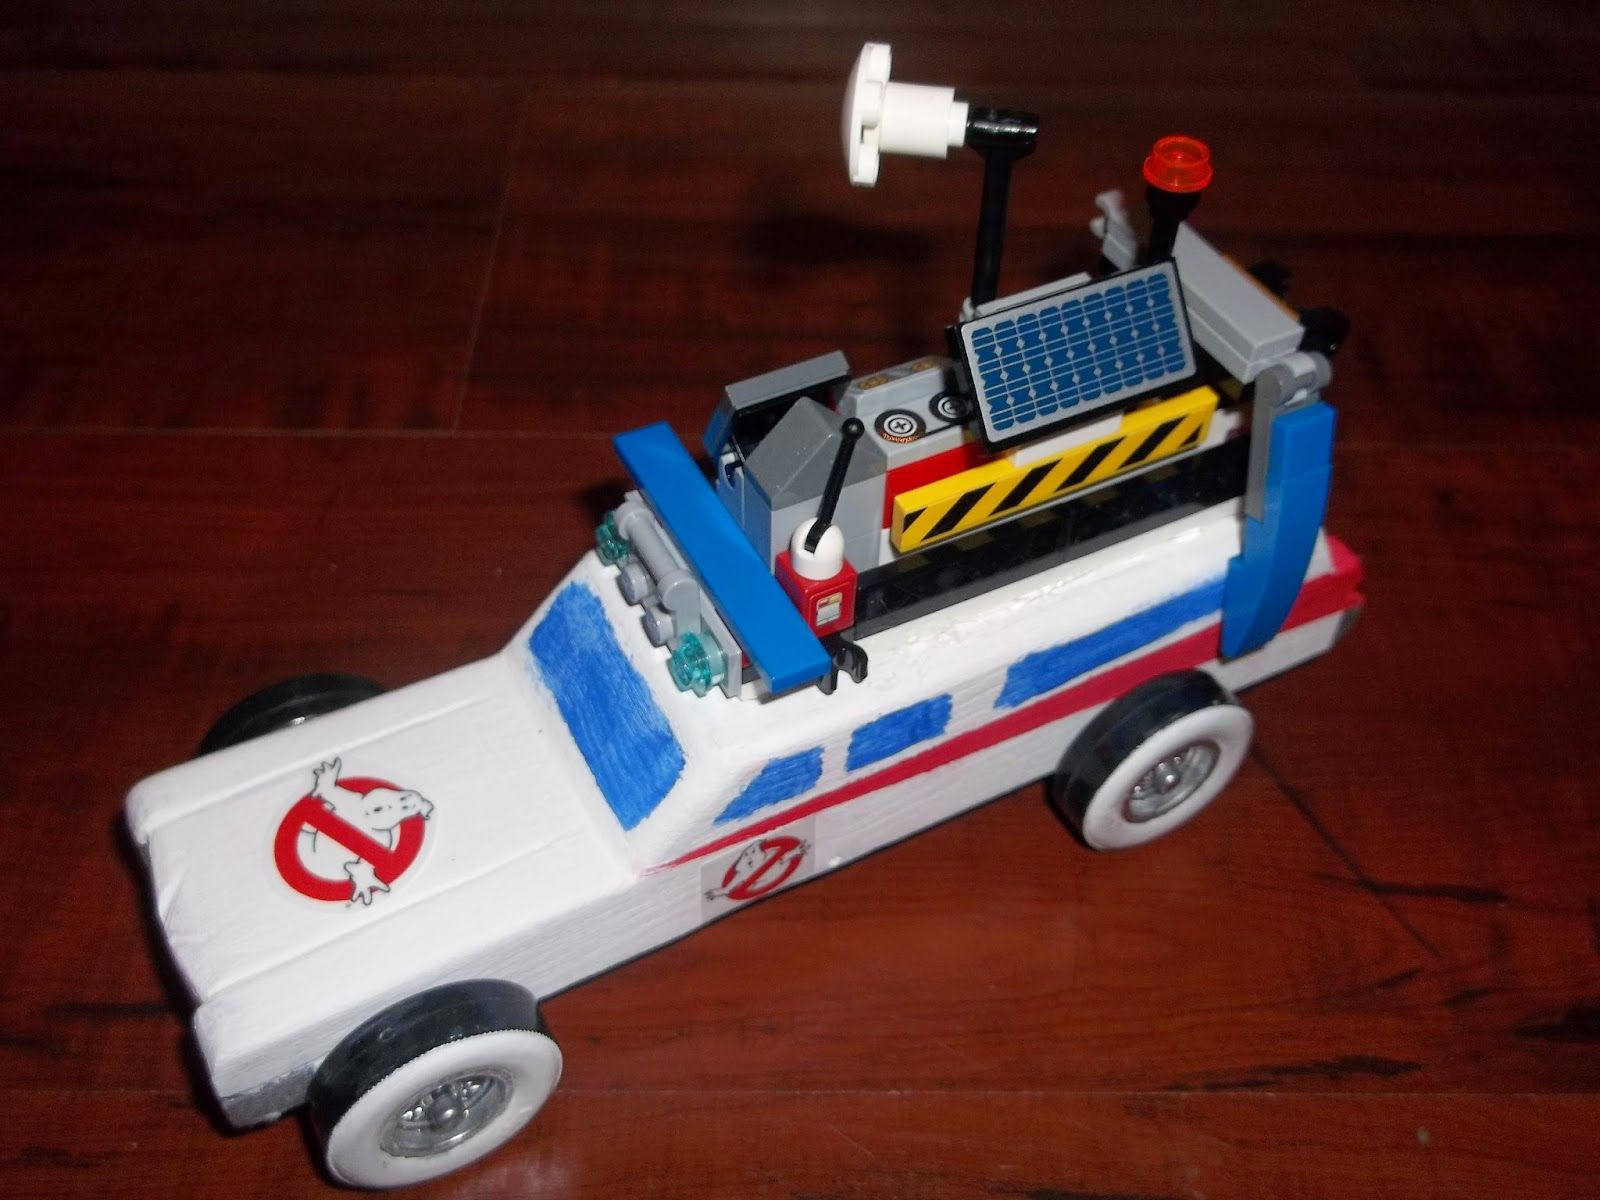 Ghostbusters toys car  Aiden Burks aidenburks on Pinterest